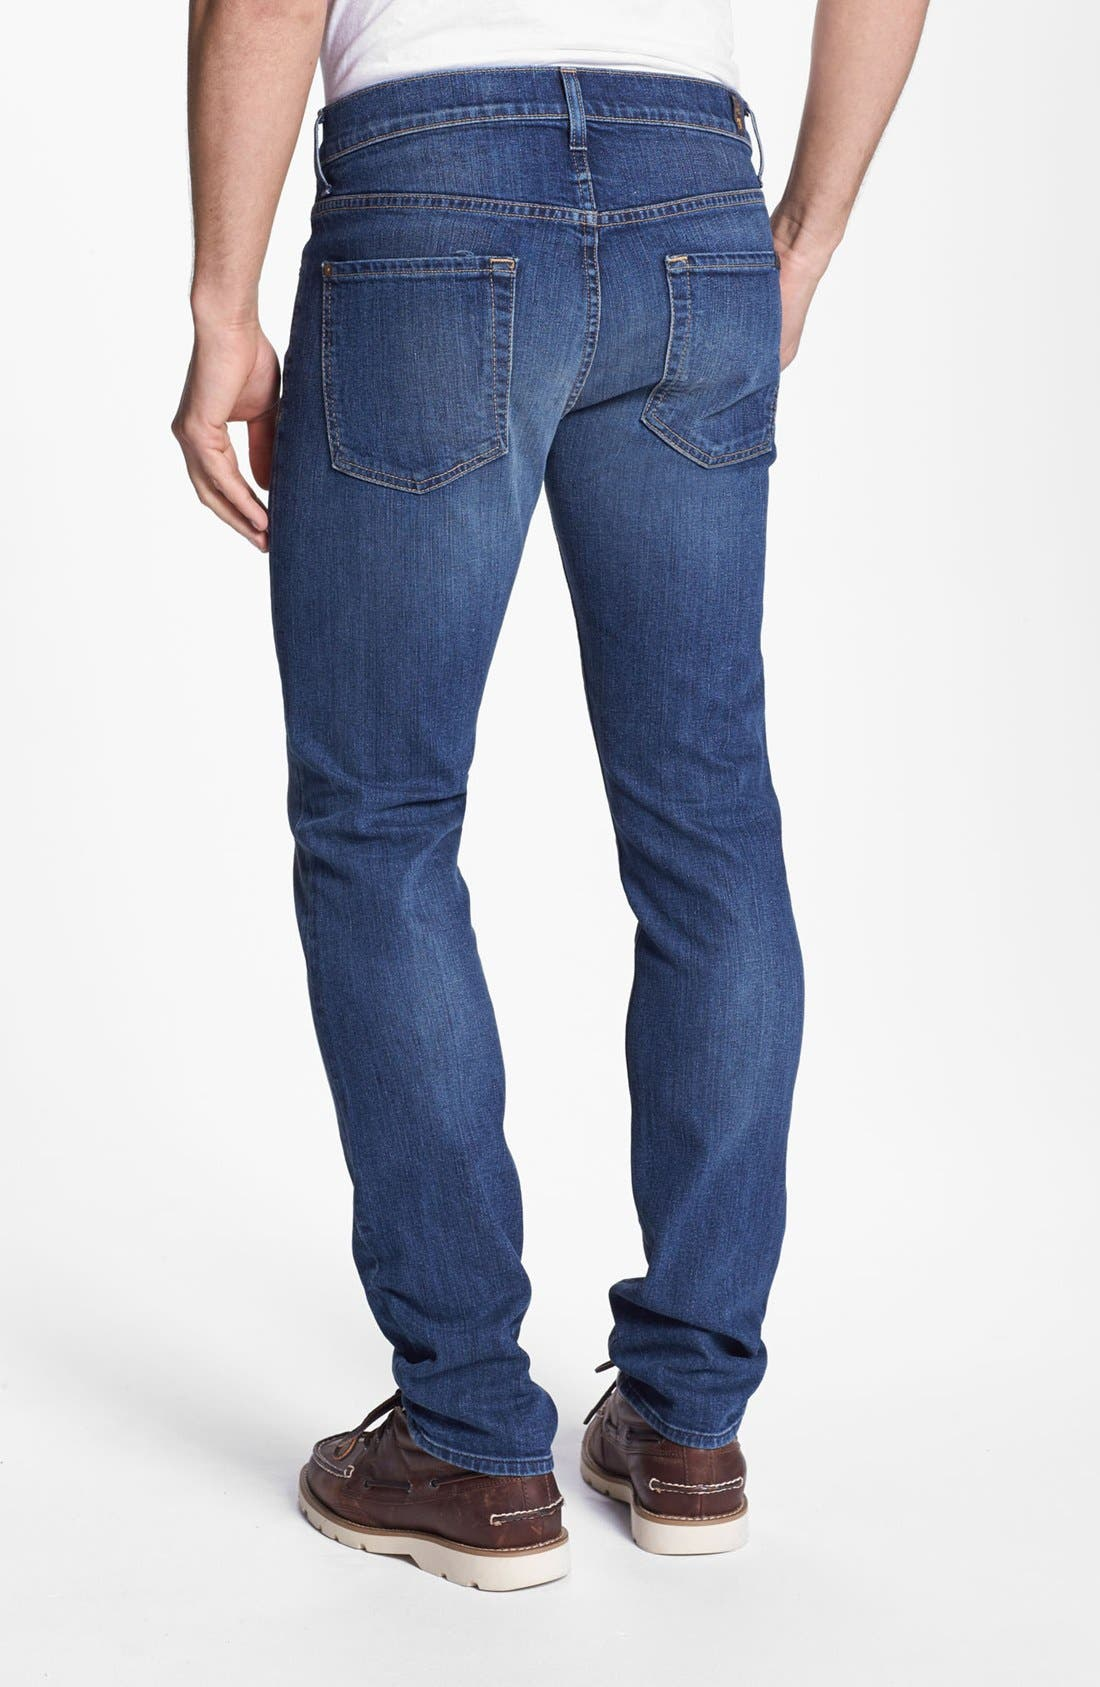 Alternate Image 1 Selected - 7 For All Mankind® 'Paxtyn' Skinny Fit Jeans (Tinted Authentic)